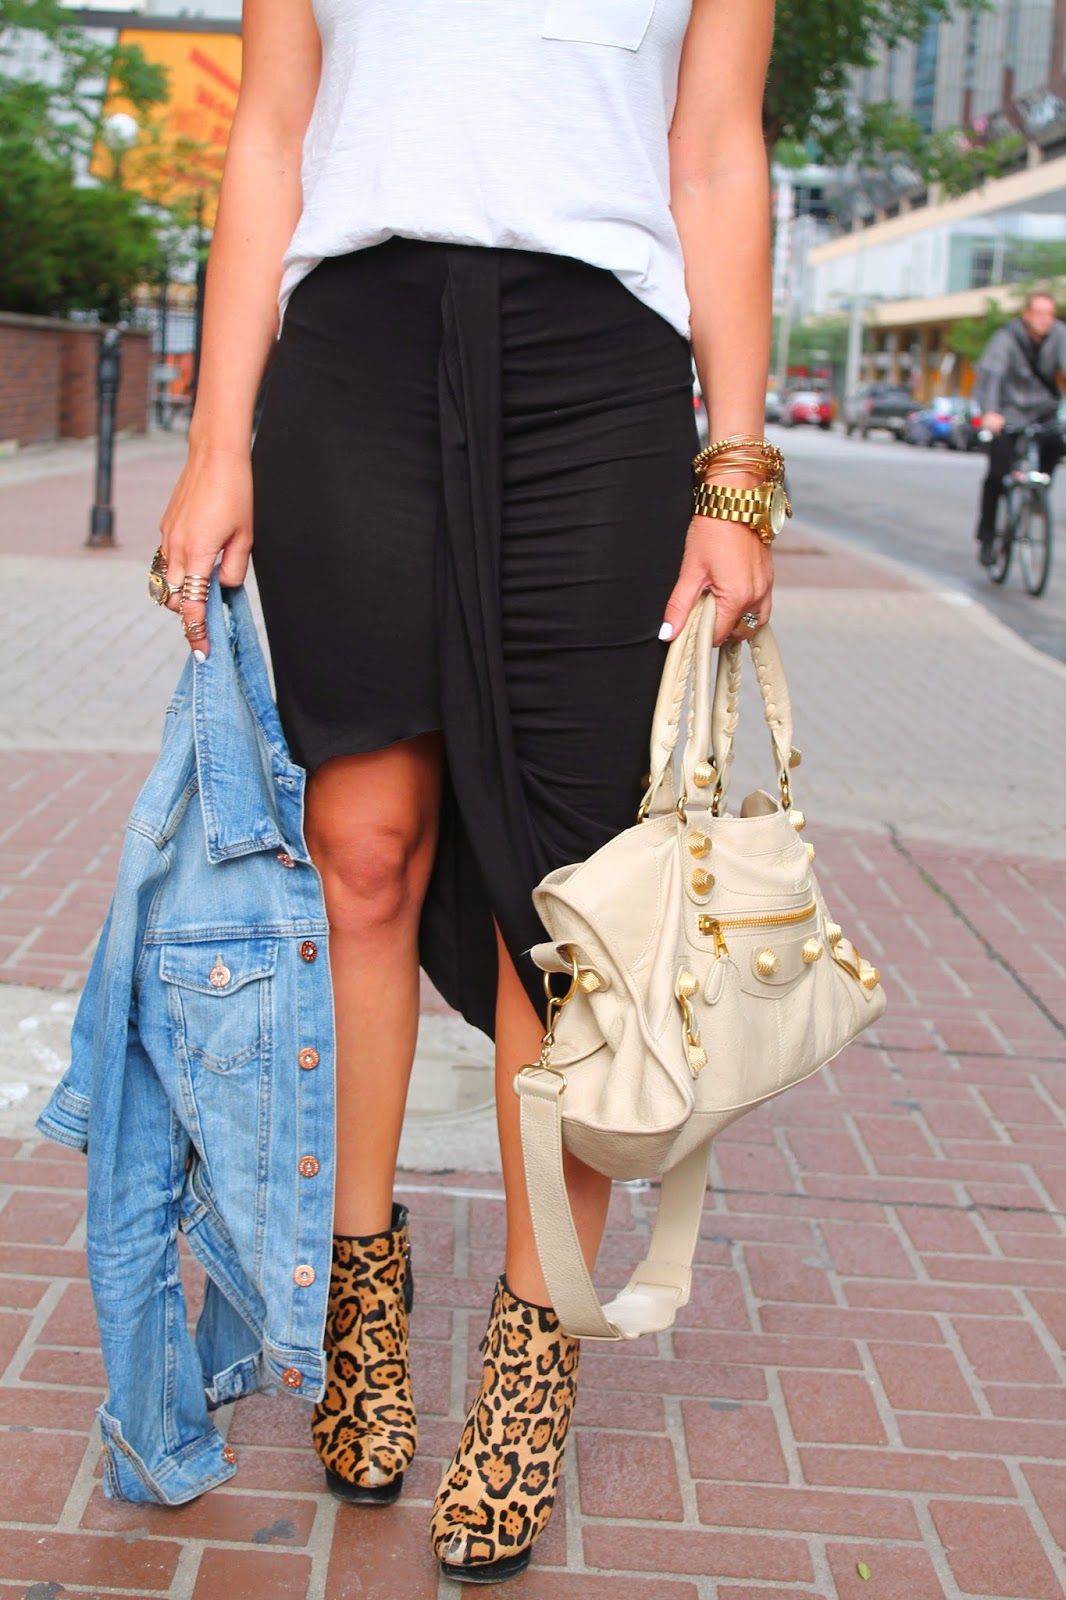 statement rings, ring stacking, black skirt, black relaxed skirt, relaxed summer outfit, white and black outfit, leopard booties, leopard ankle boots, balenciaga bag, blogerke, letnja moda, canadian fashion blogger, toronto street style, yonge street, dundas square, ombre hair, red lips, alex&ani